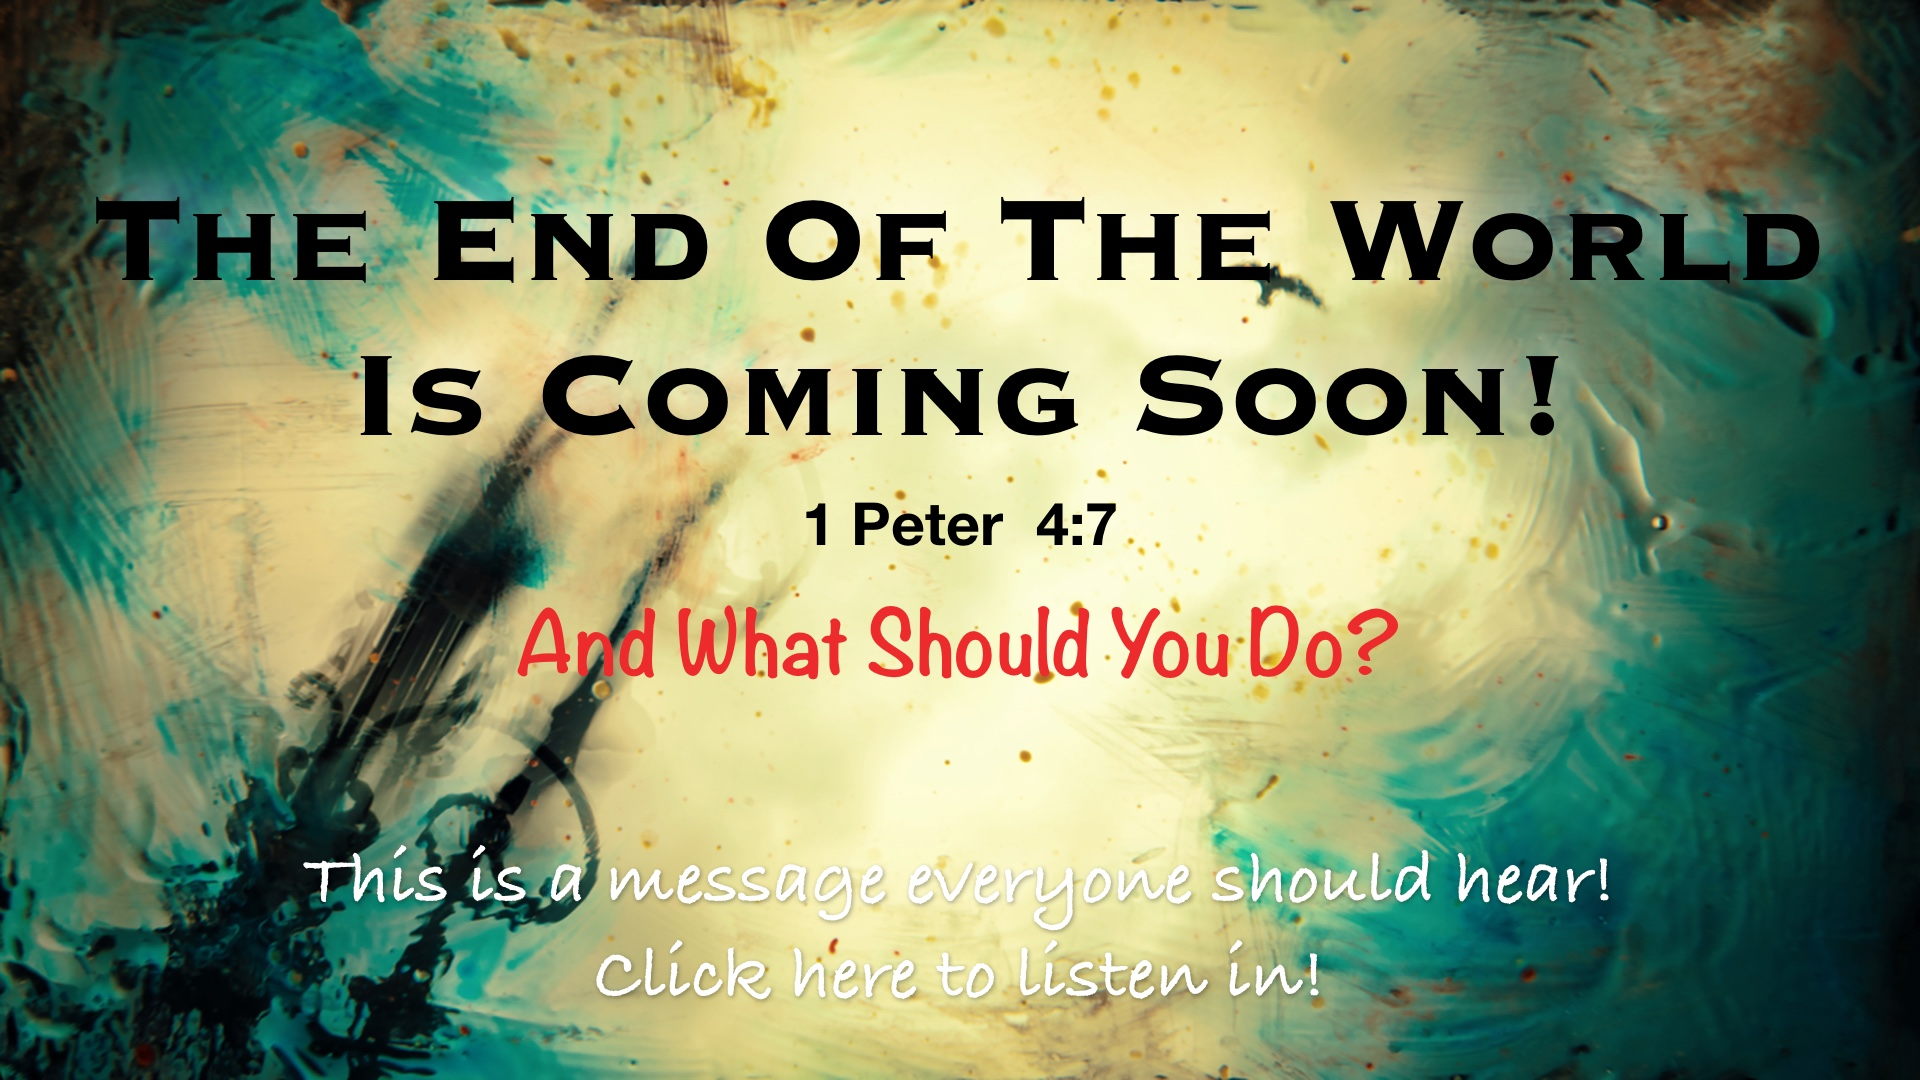 The End Of The World Is Coming Soon! And What Should You Do